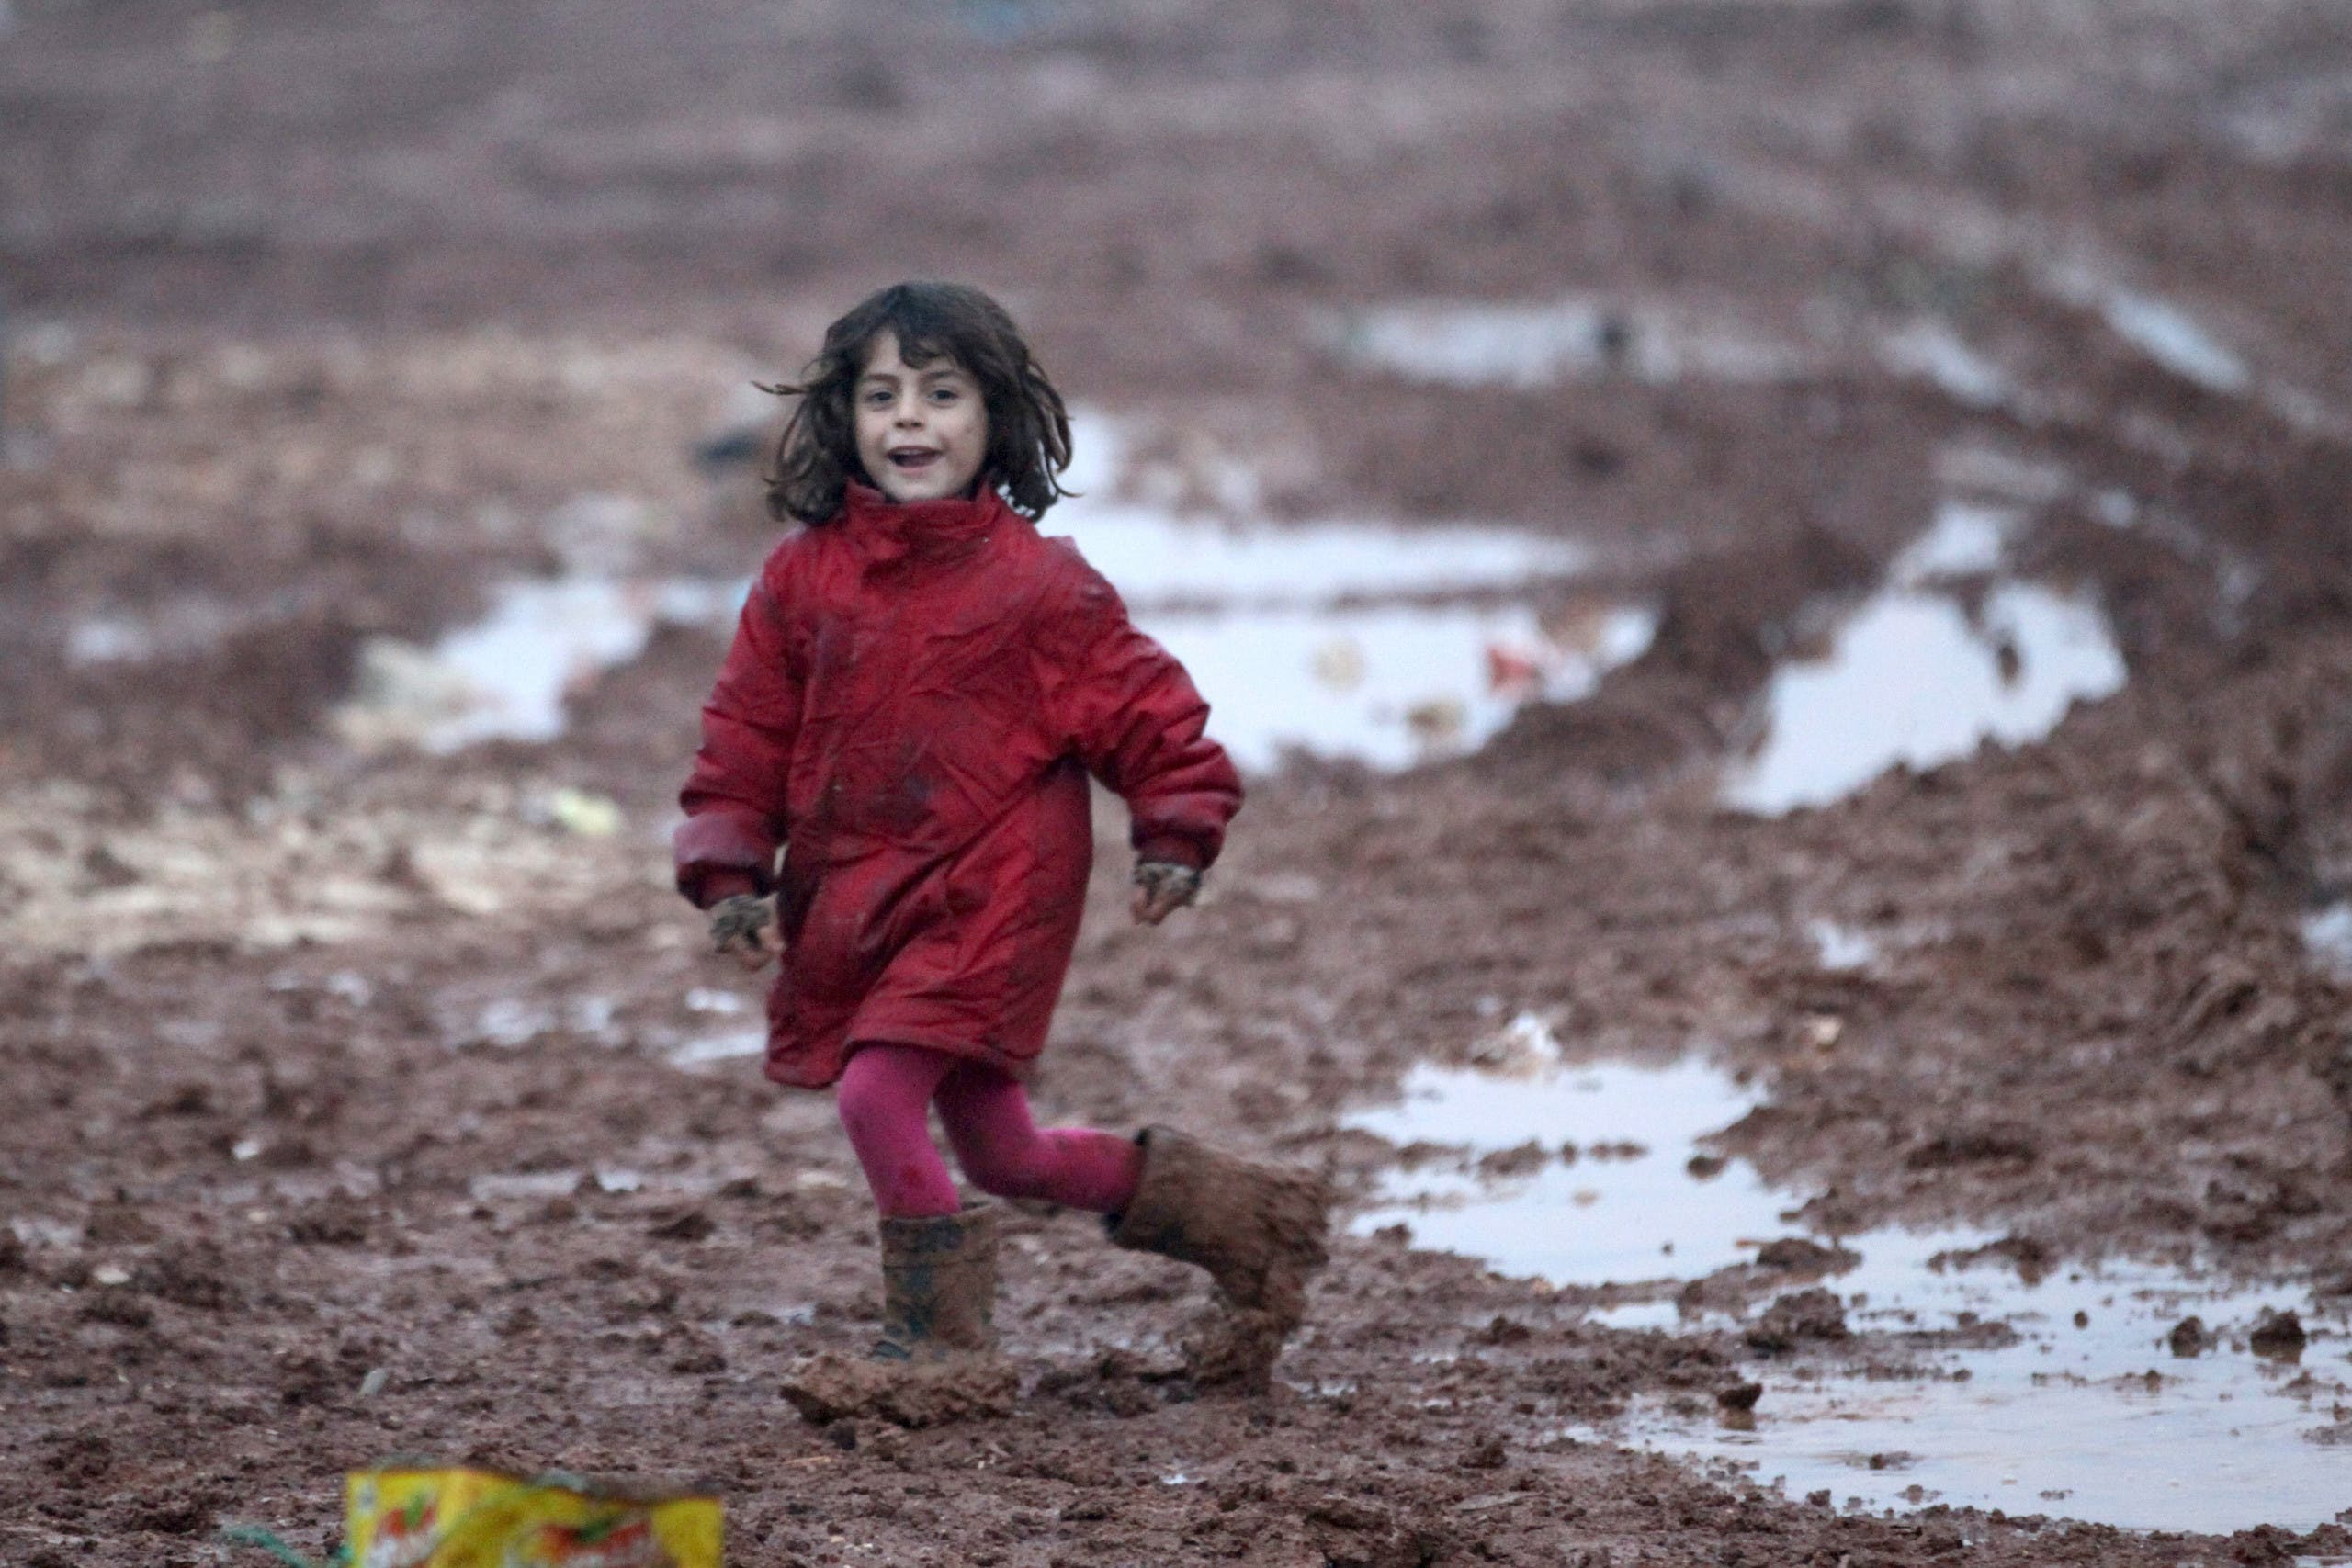 An internally displaced Syrian girl runs through mud in the Bab Al-Salam refugee camp, near the Syrian-Turkish border, northern Aleppo province, Syria December 26, 2016. REUTERS/Khalil Ashawi